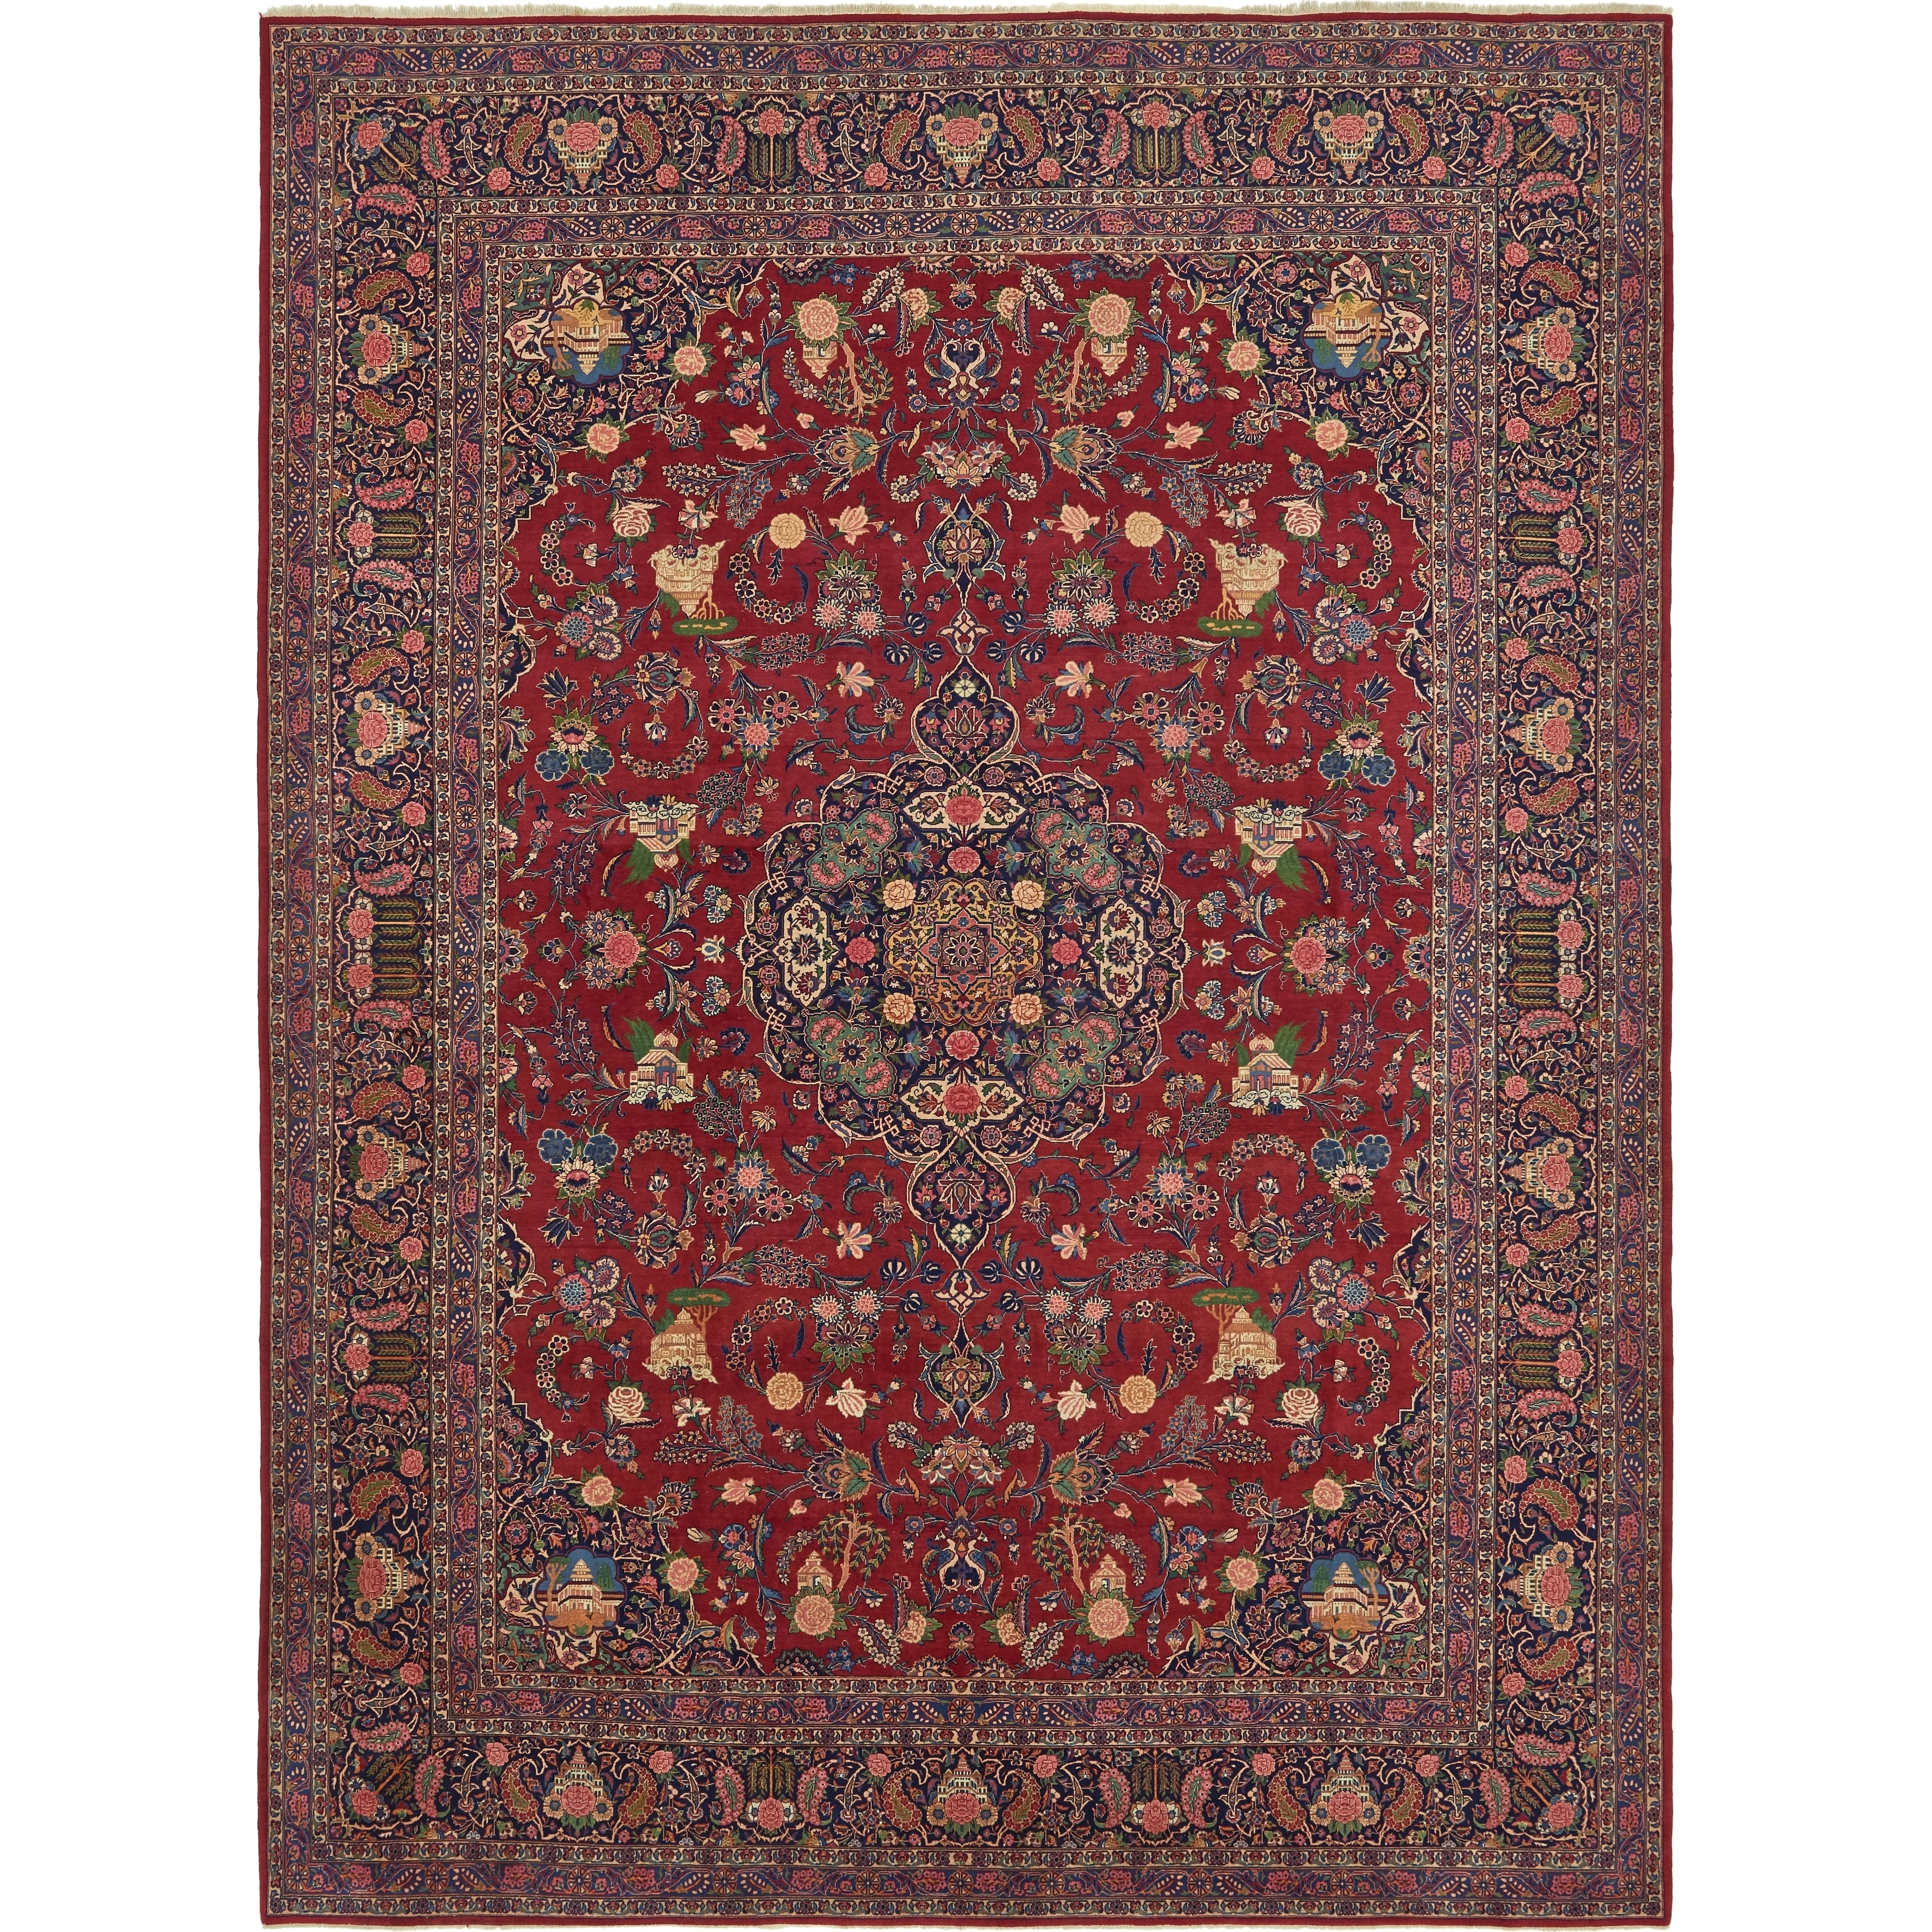 Hand Knotted Kashan Antique Kork Wool Area Rug - 10 6 x 14 2 (Red - 10 6 x 14 2)